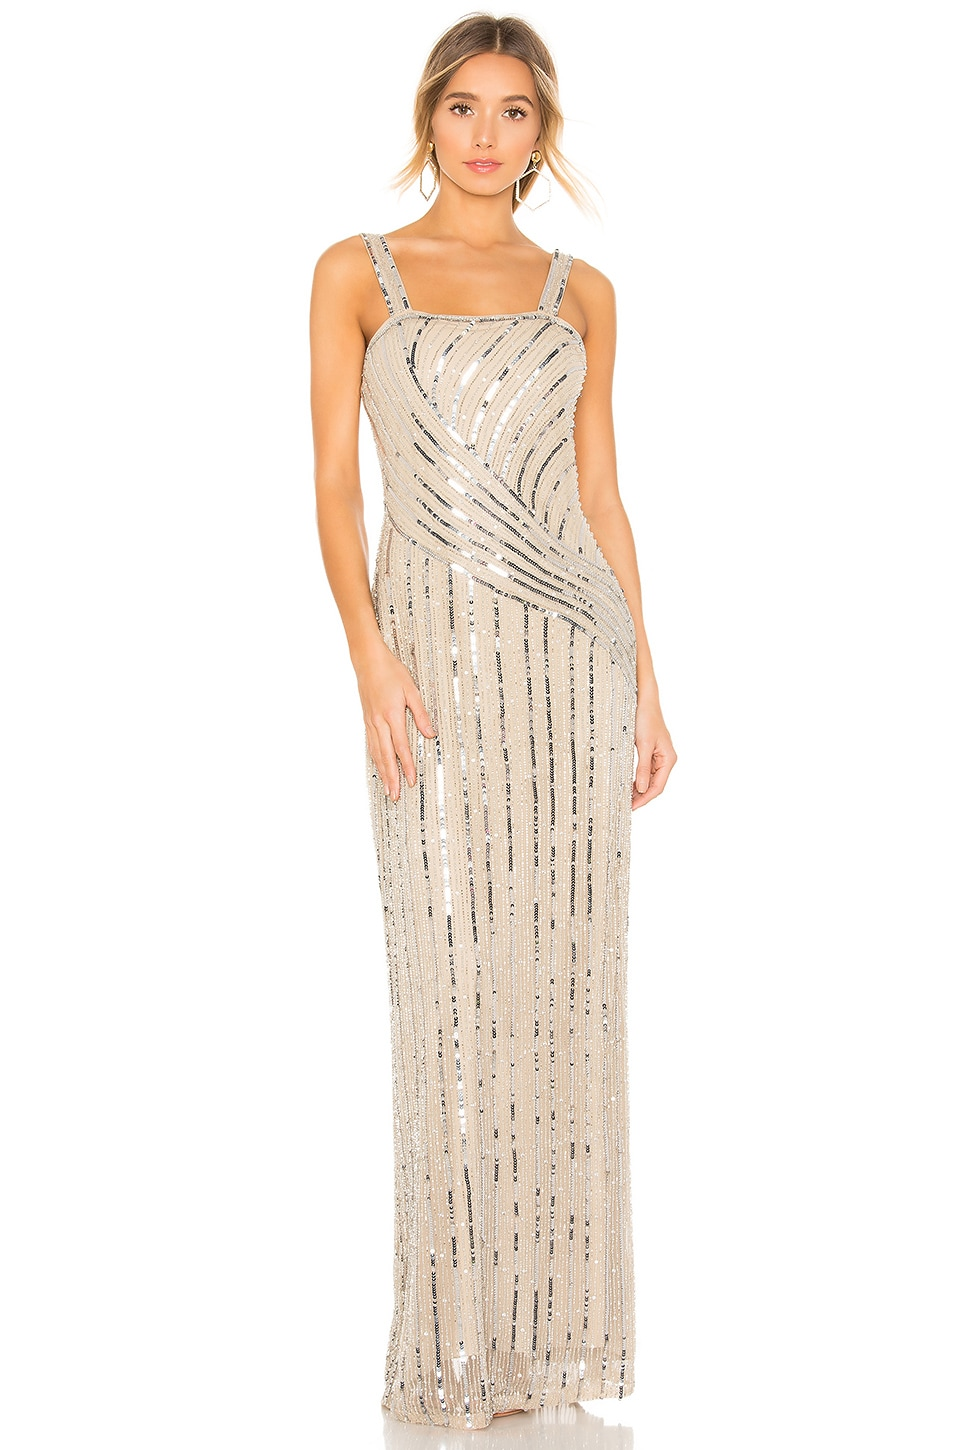 Parker Black Lisbeth Gown in Champagne